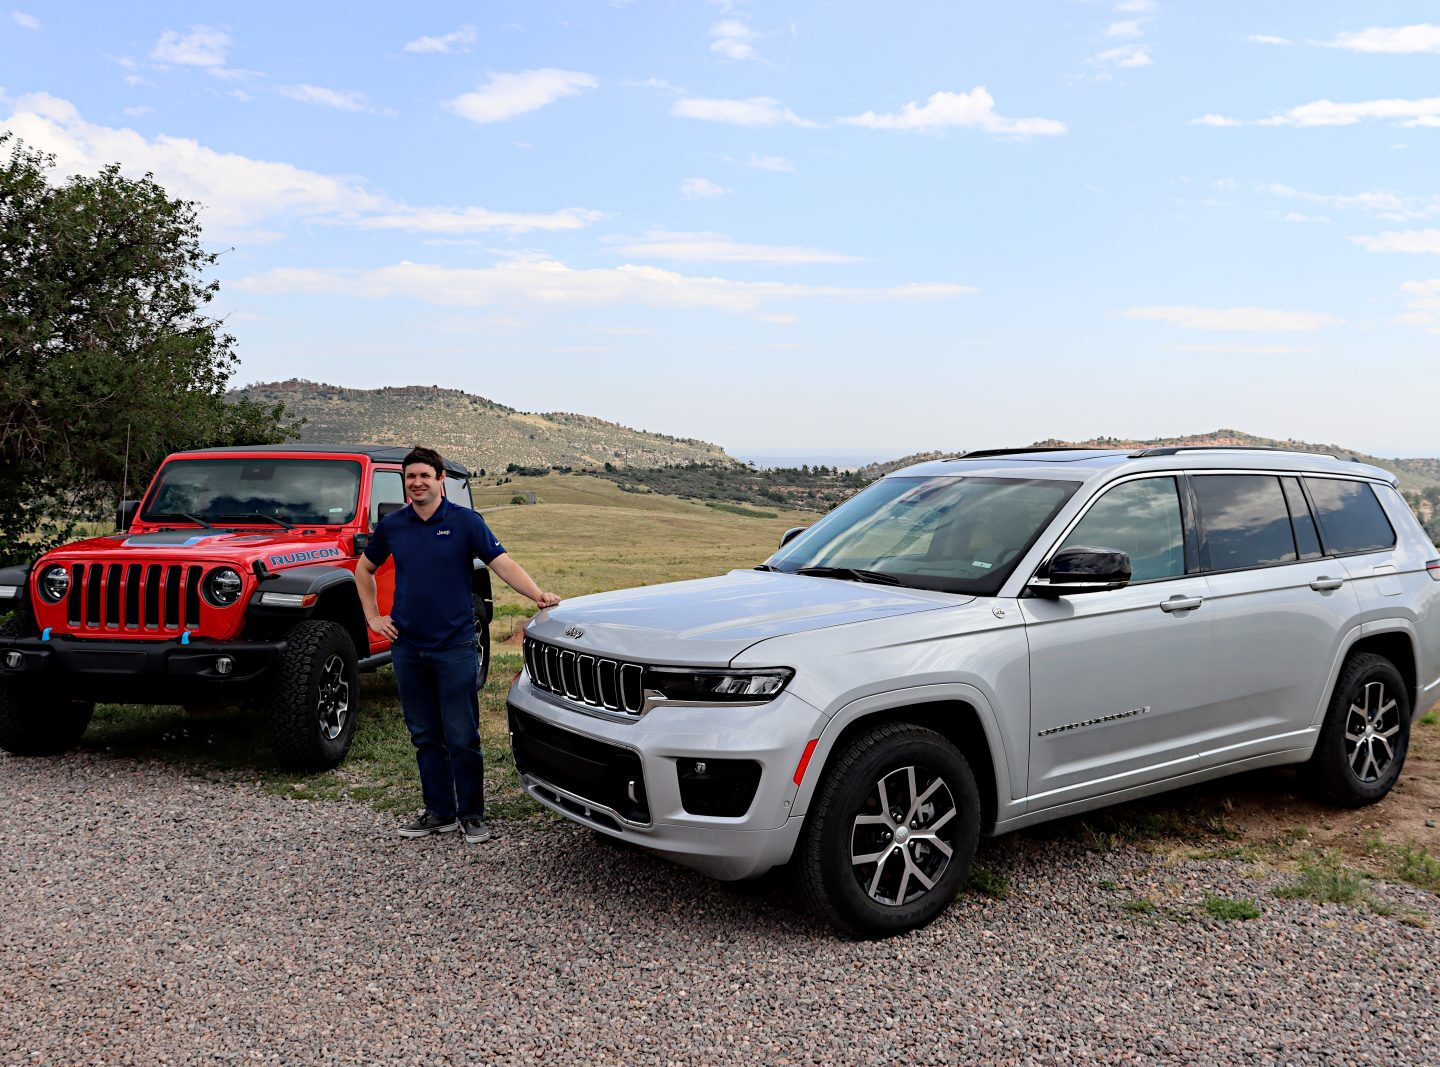 The Rocky Mountain Driving Experience 2021